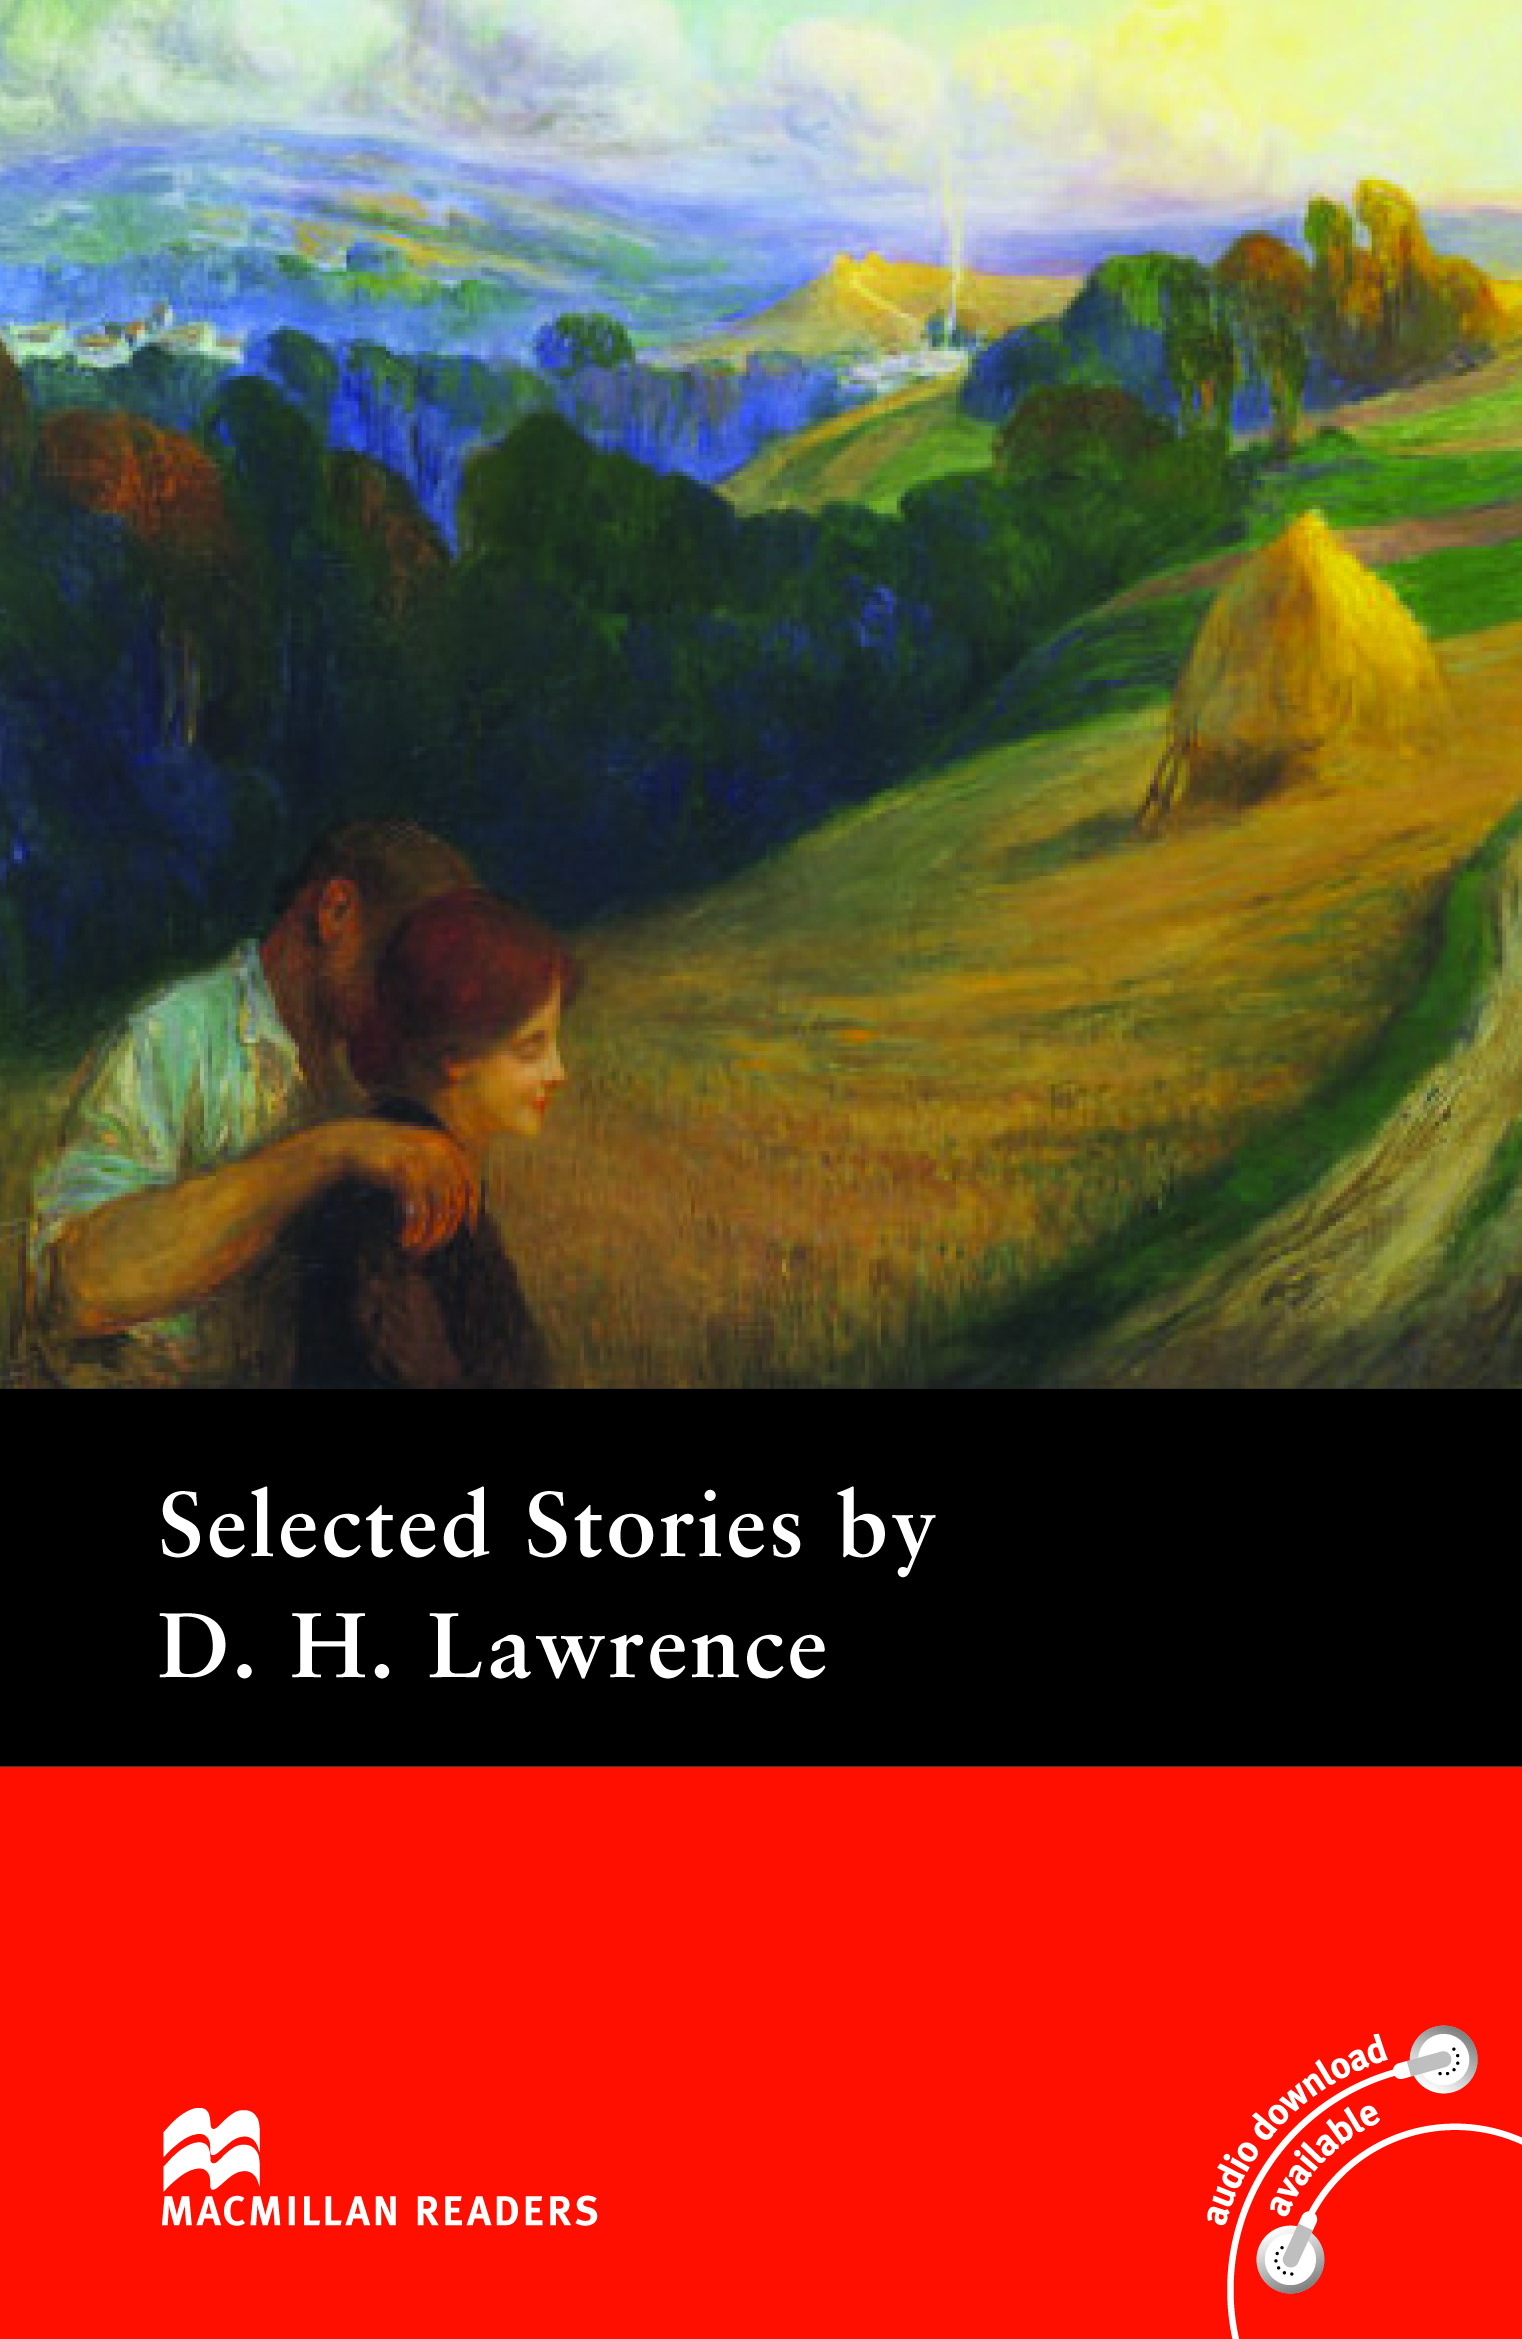 Macmillan Readers: Selected Stories by D. H. Lawrence without CD